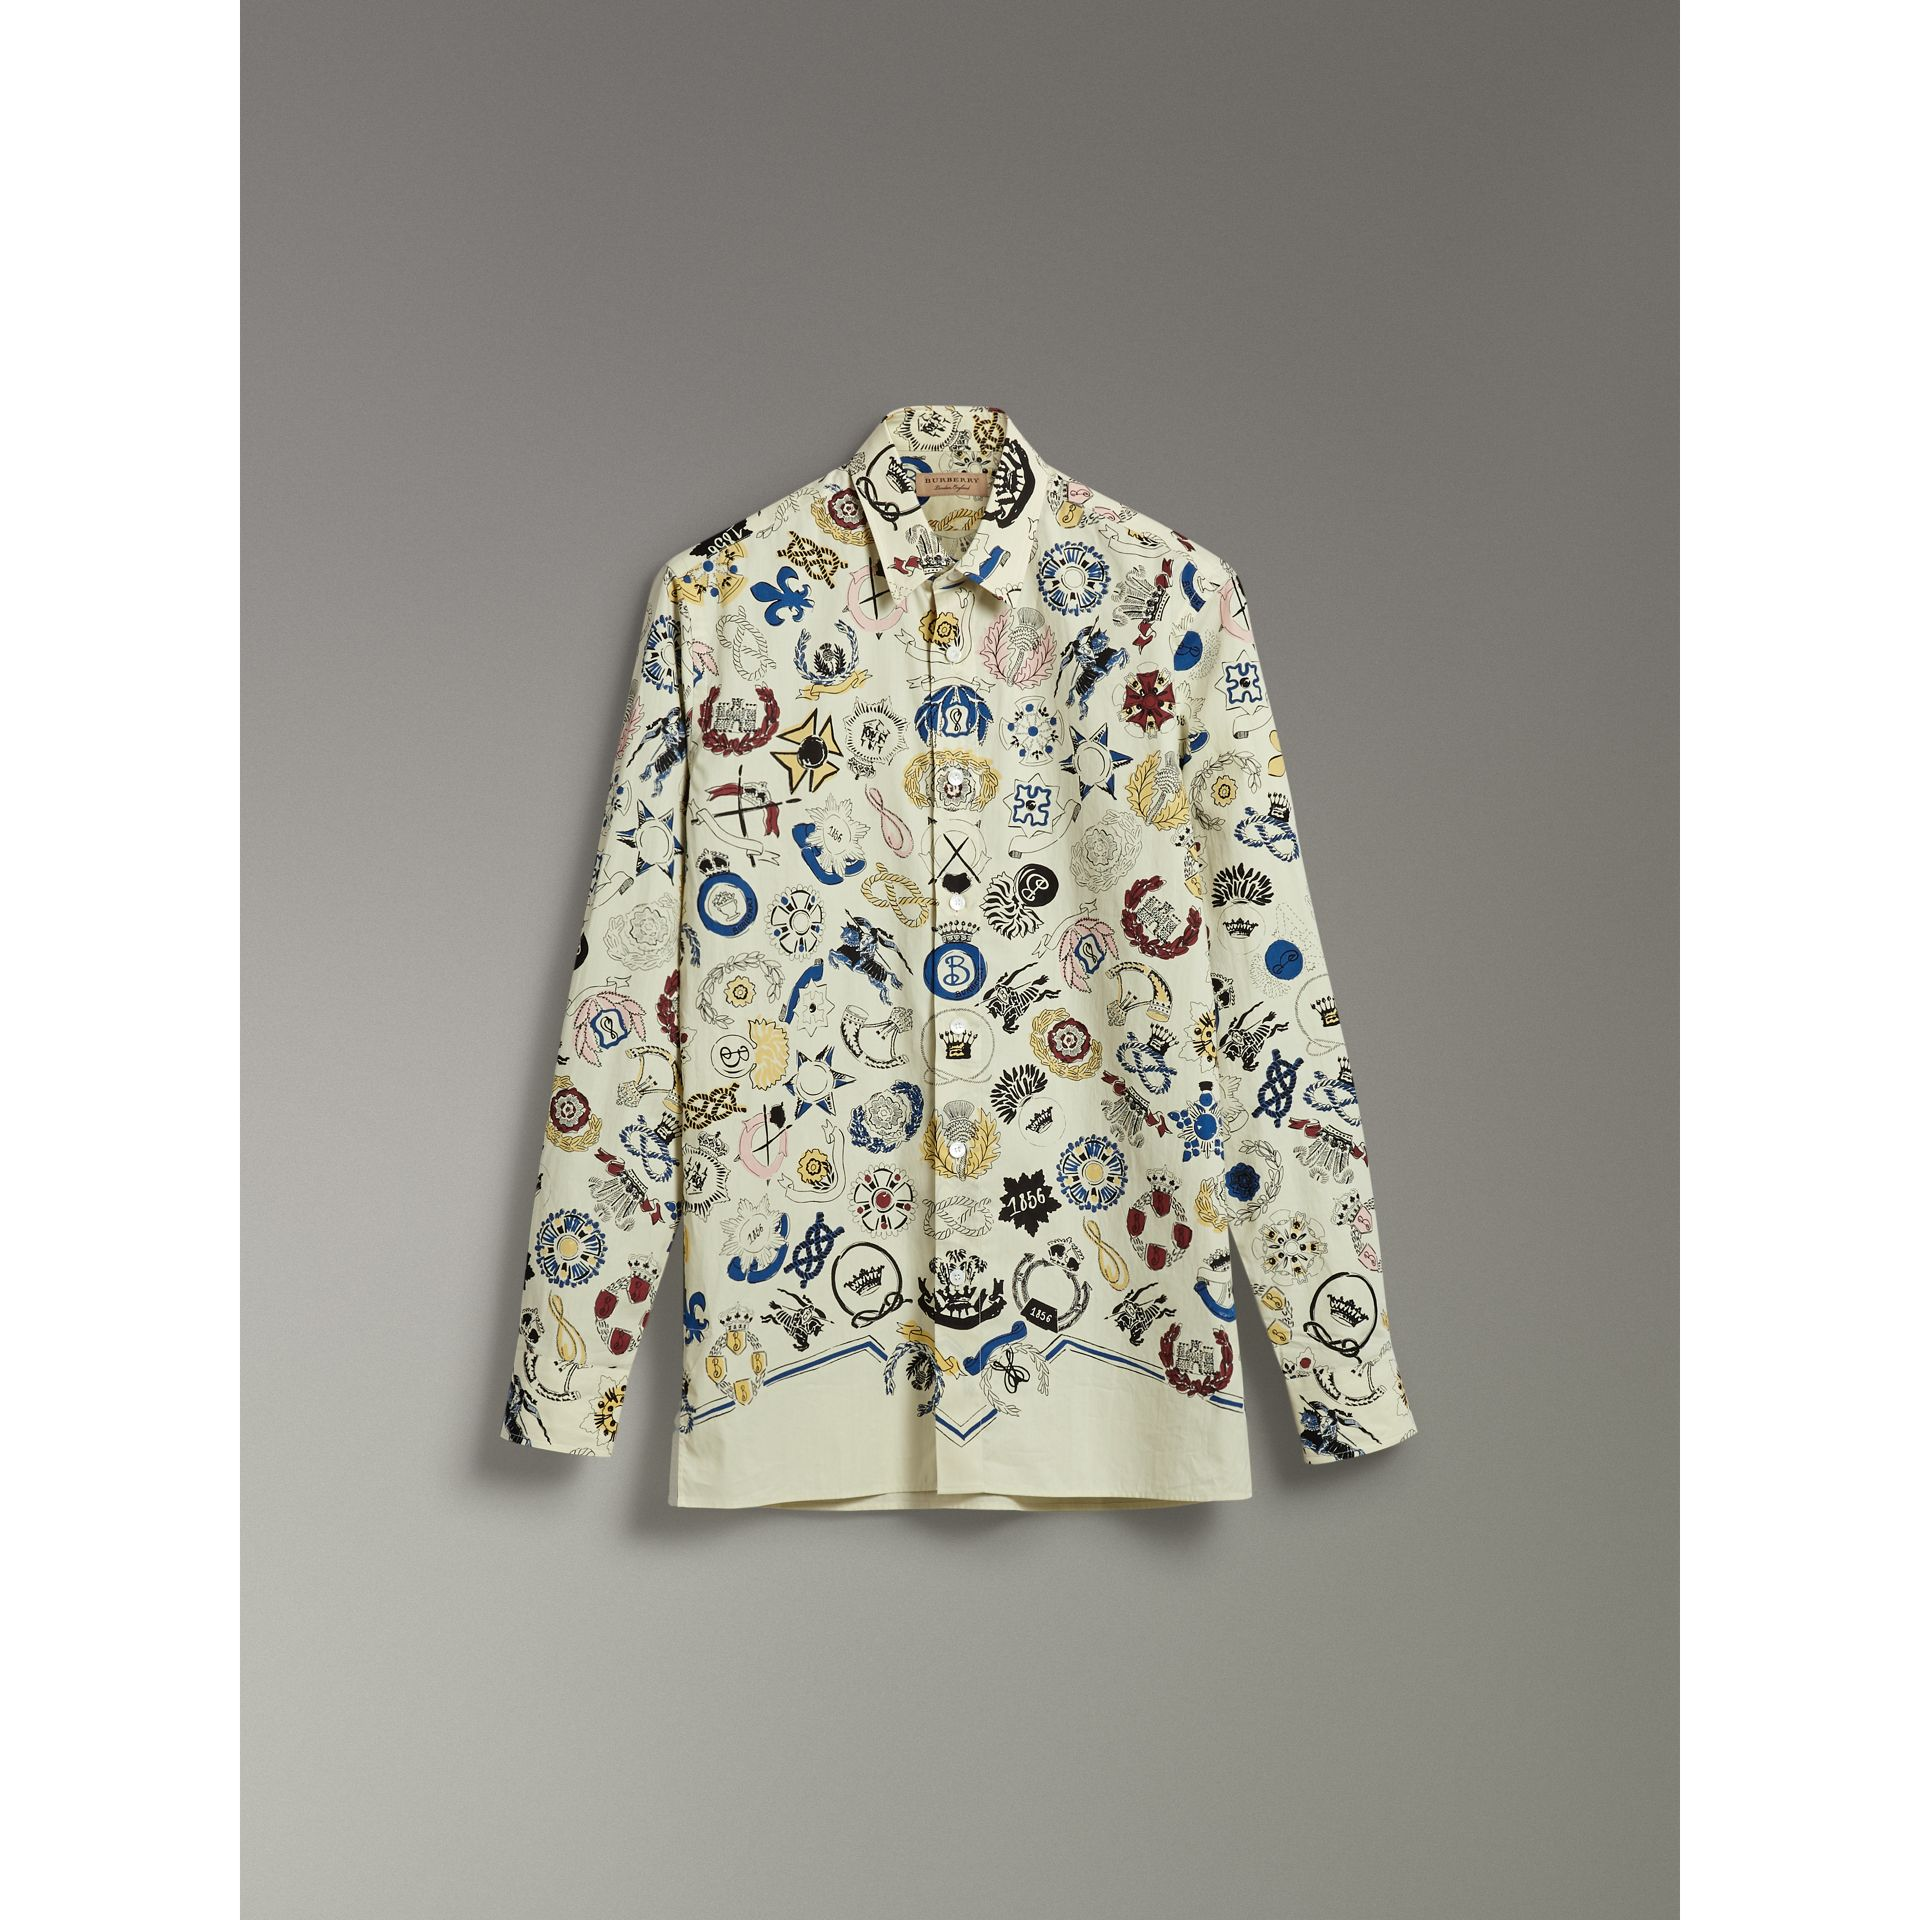 Emblem Print Cotton Shirt in Natural White - Men | Burberry - gallery image 3